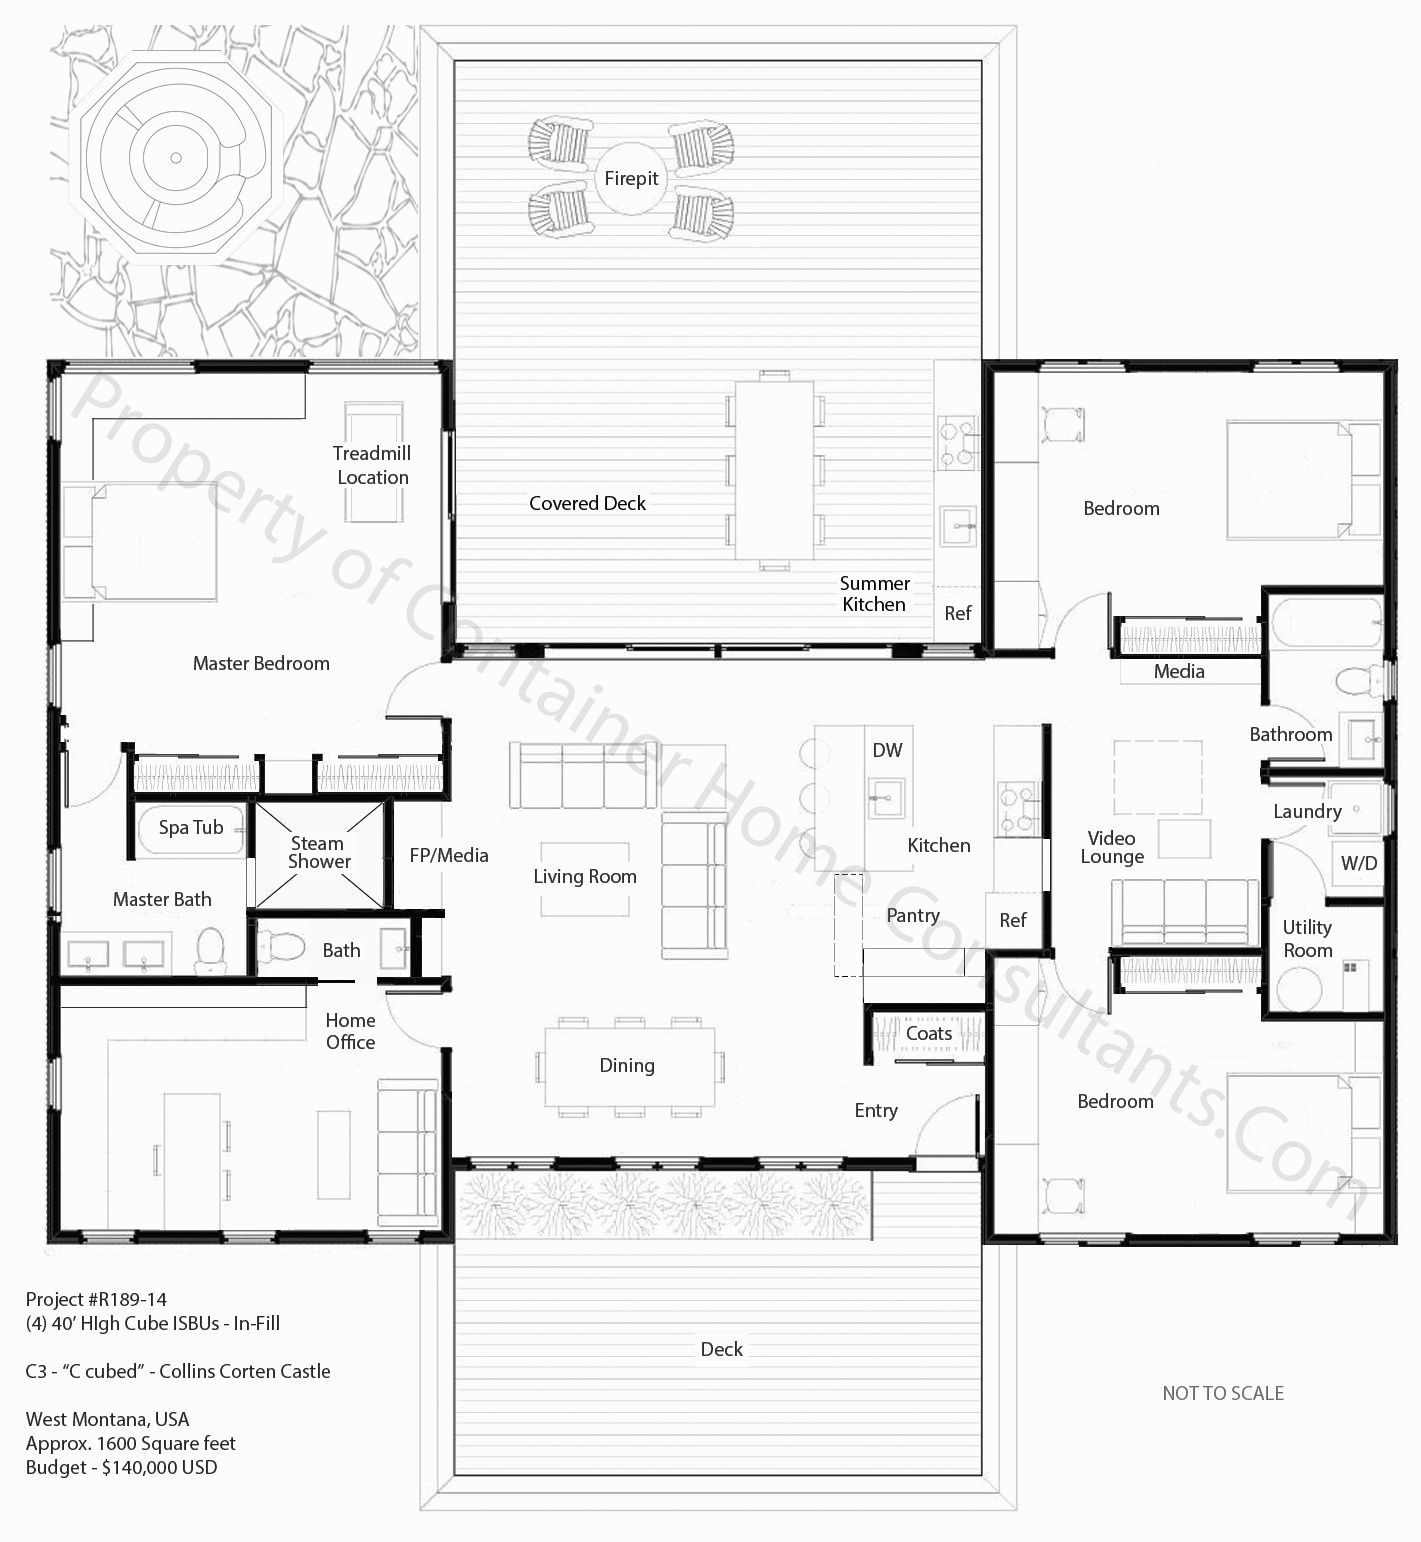 H Shaped House Plans Gleaming H Shaped Container Home Plan House Planes Pinterest Container House Plans Shipping Container House Plans Container House